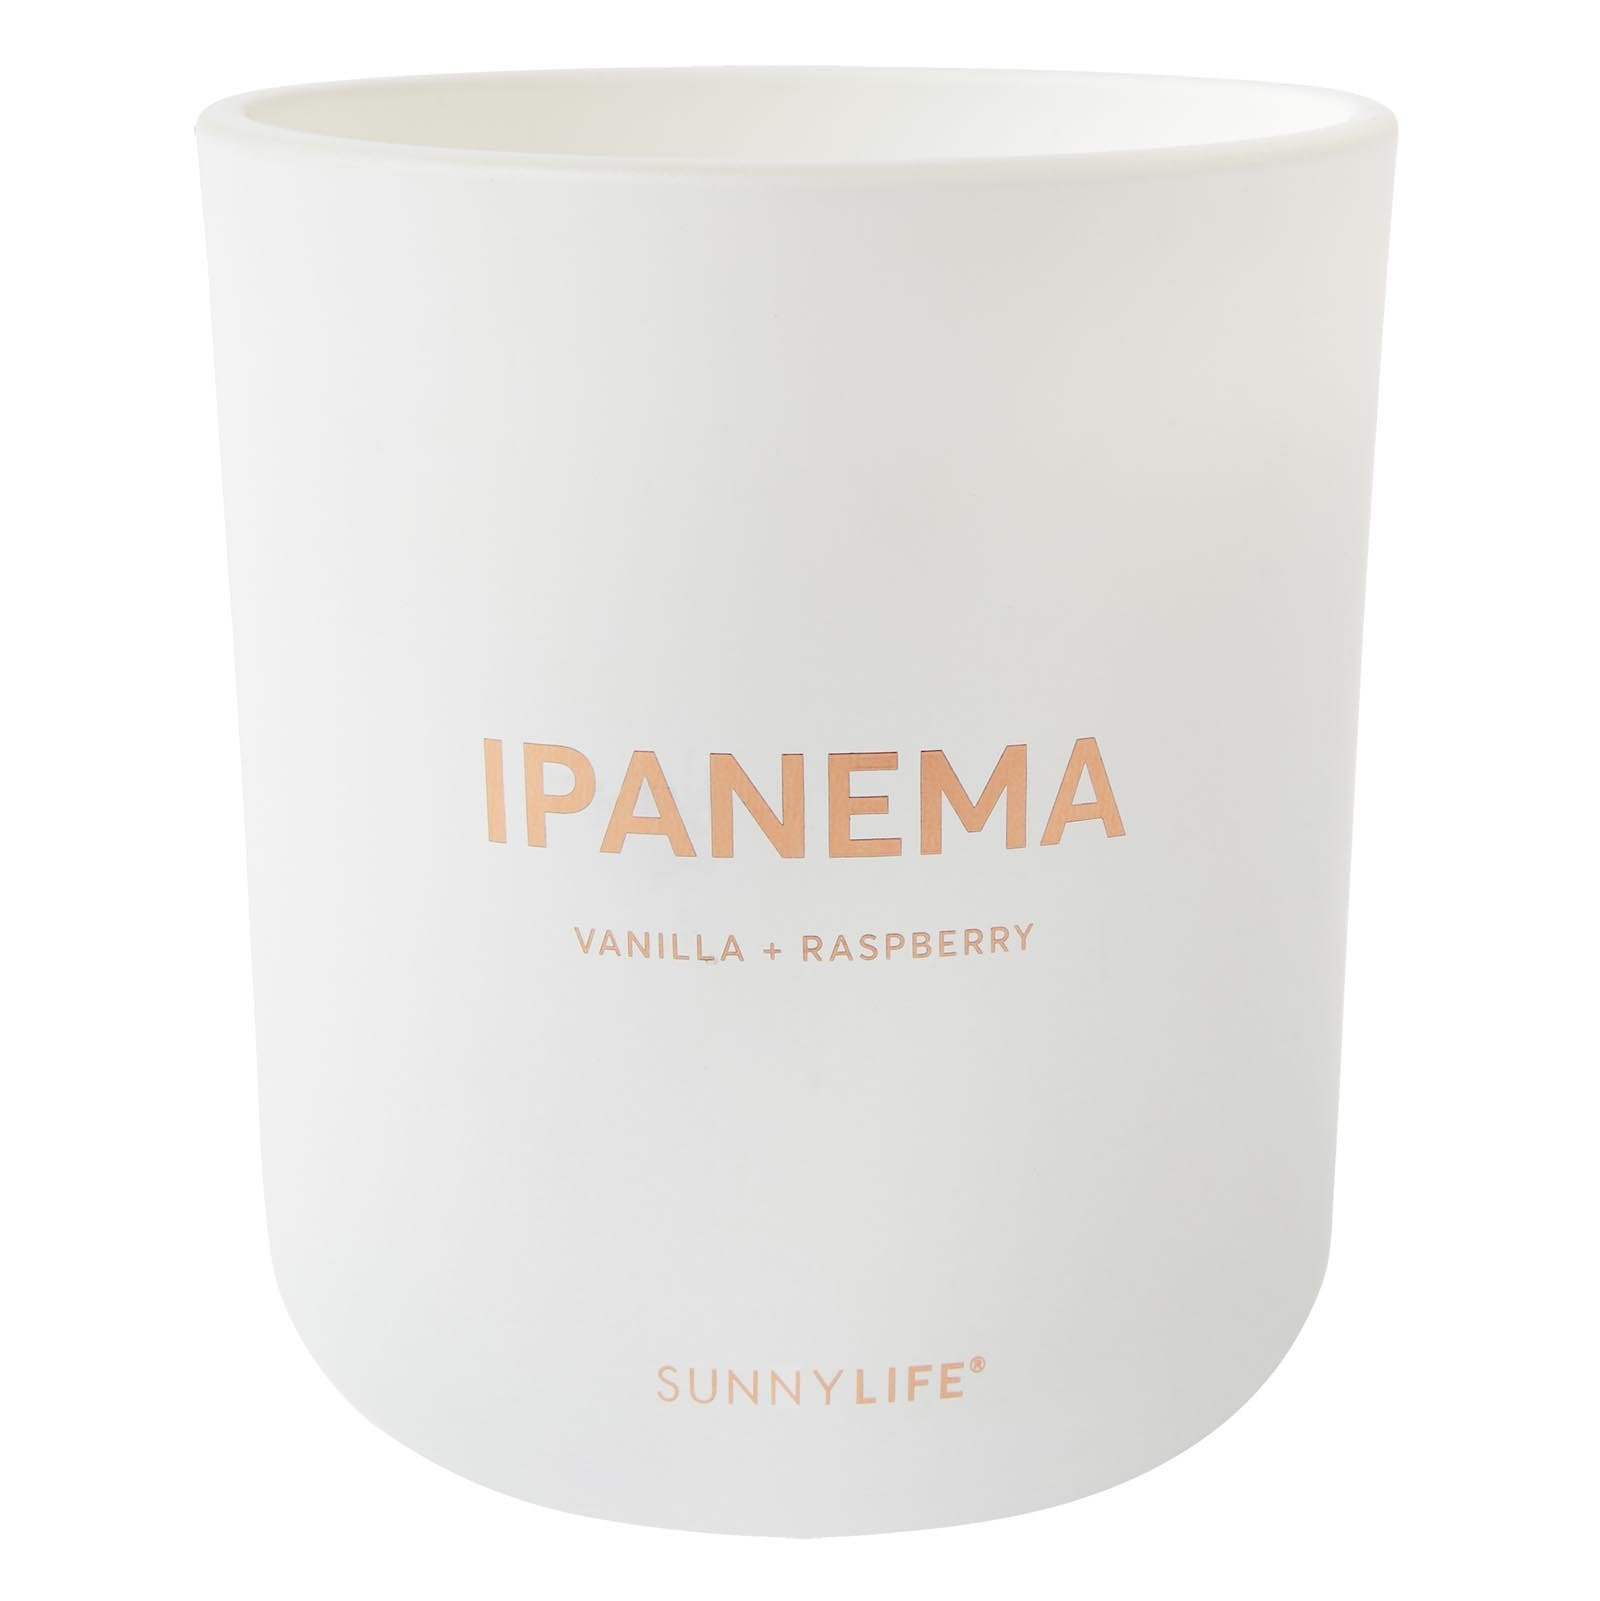 Sunnylife Scented Candle - Ipanema